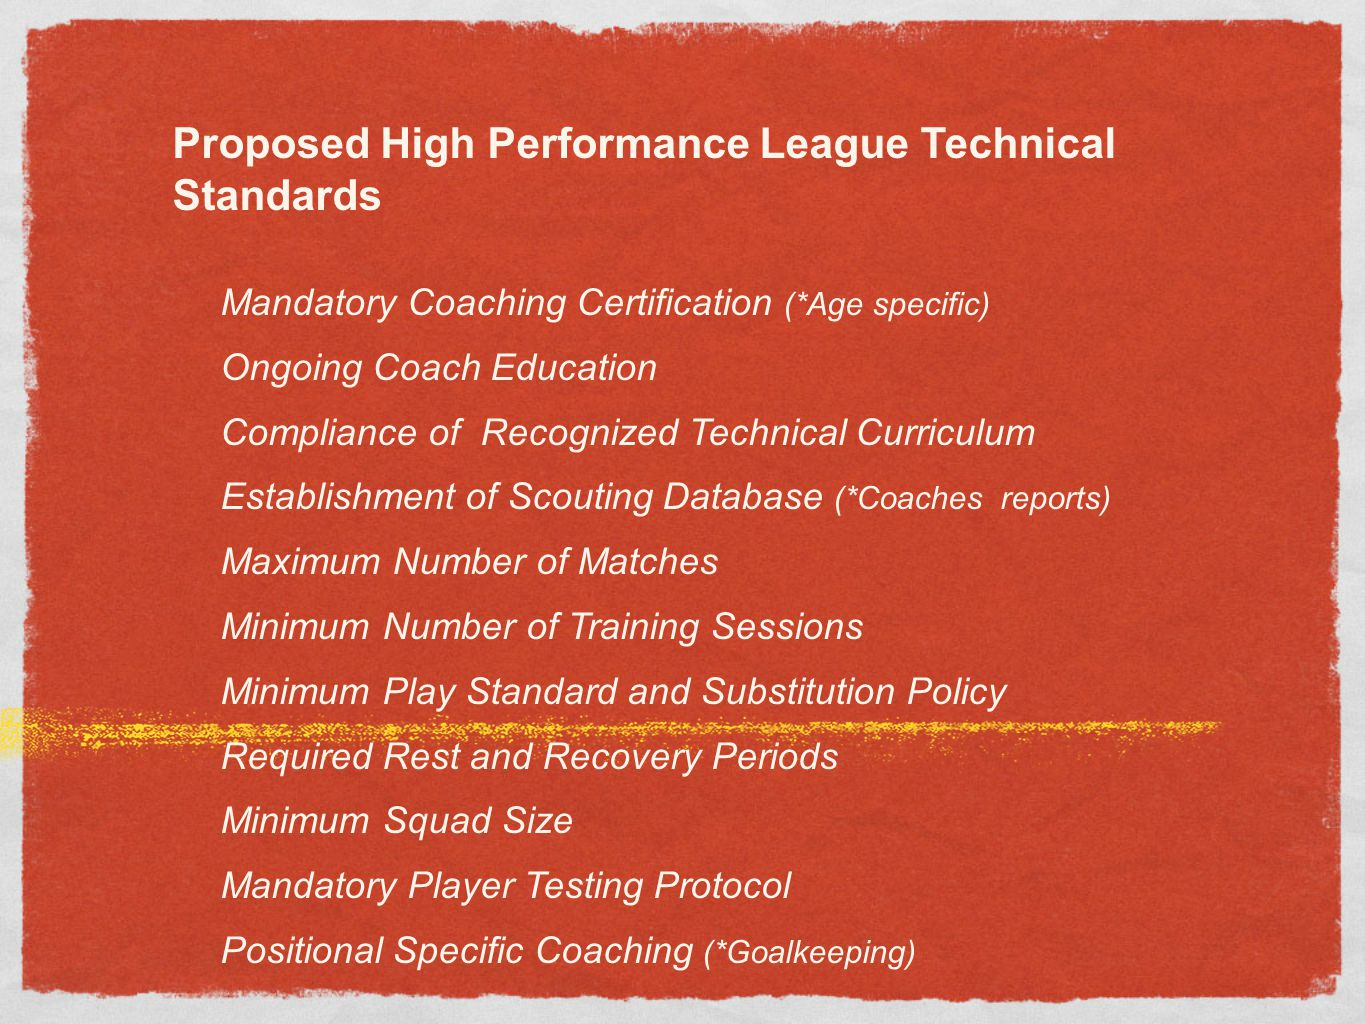 Proposed High Performance League Technical Standards